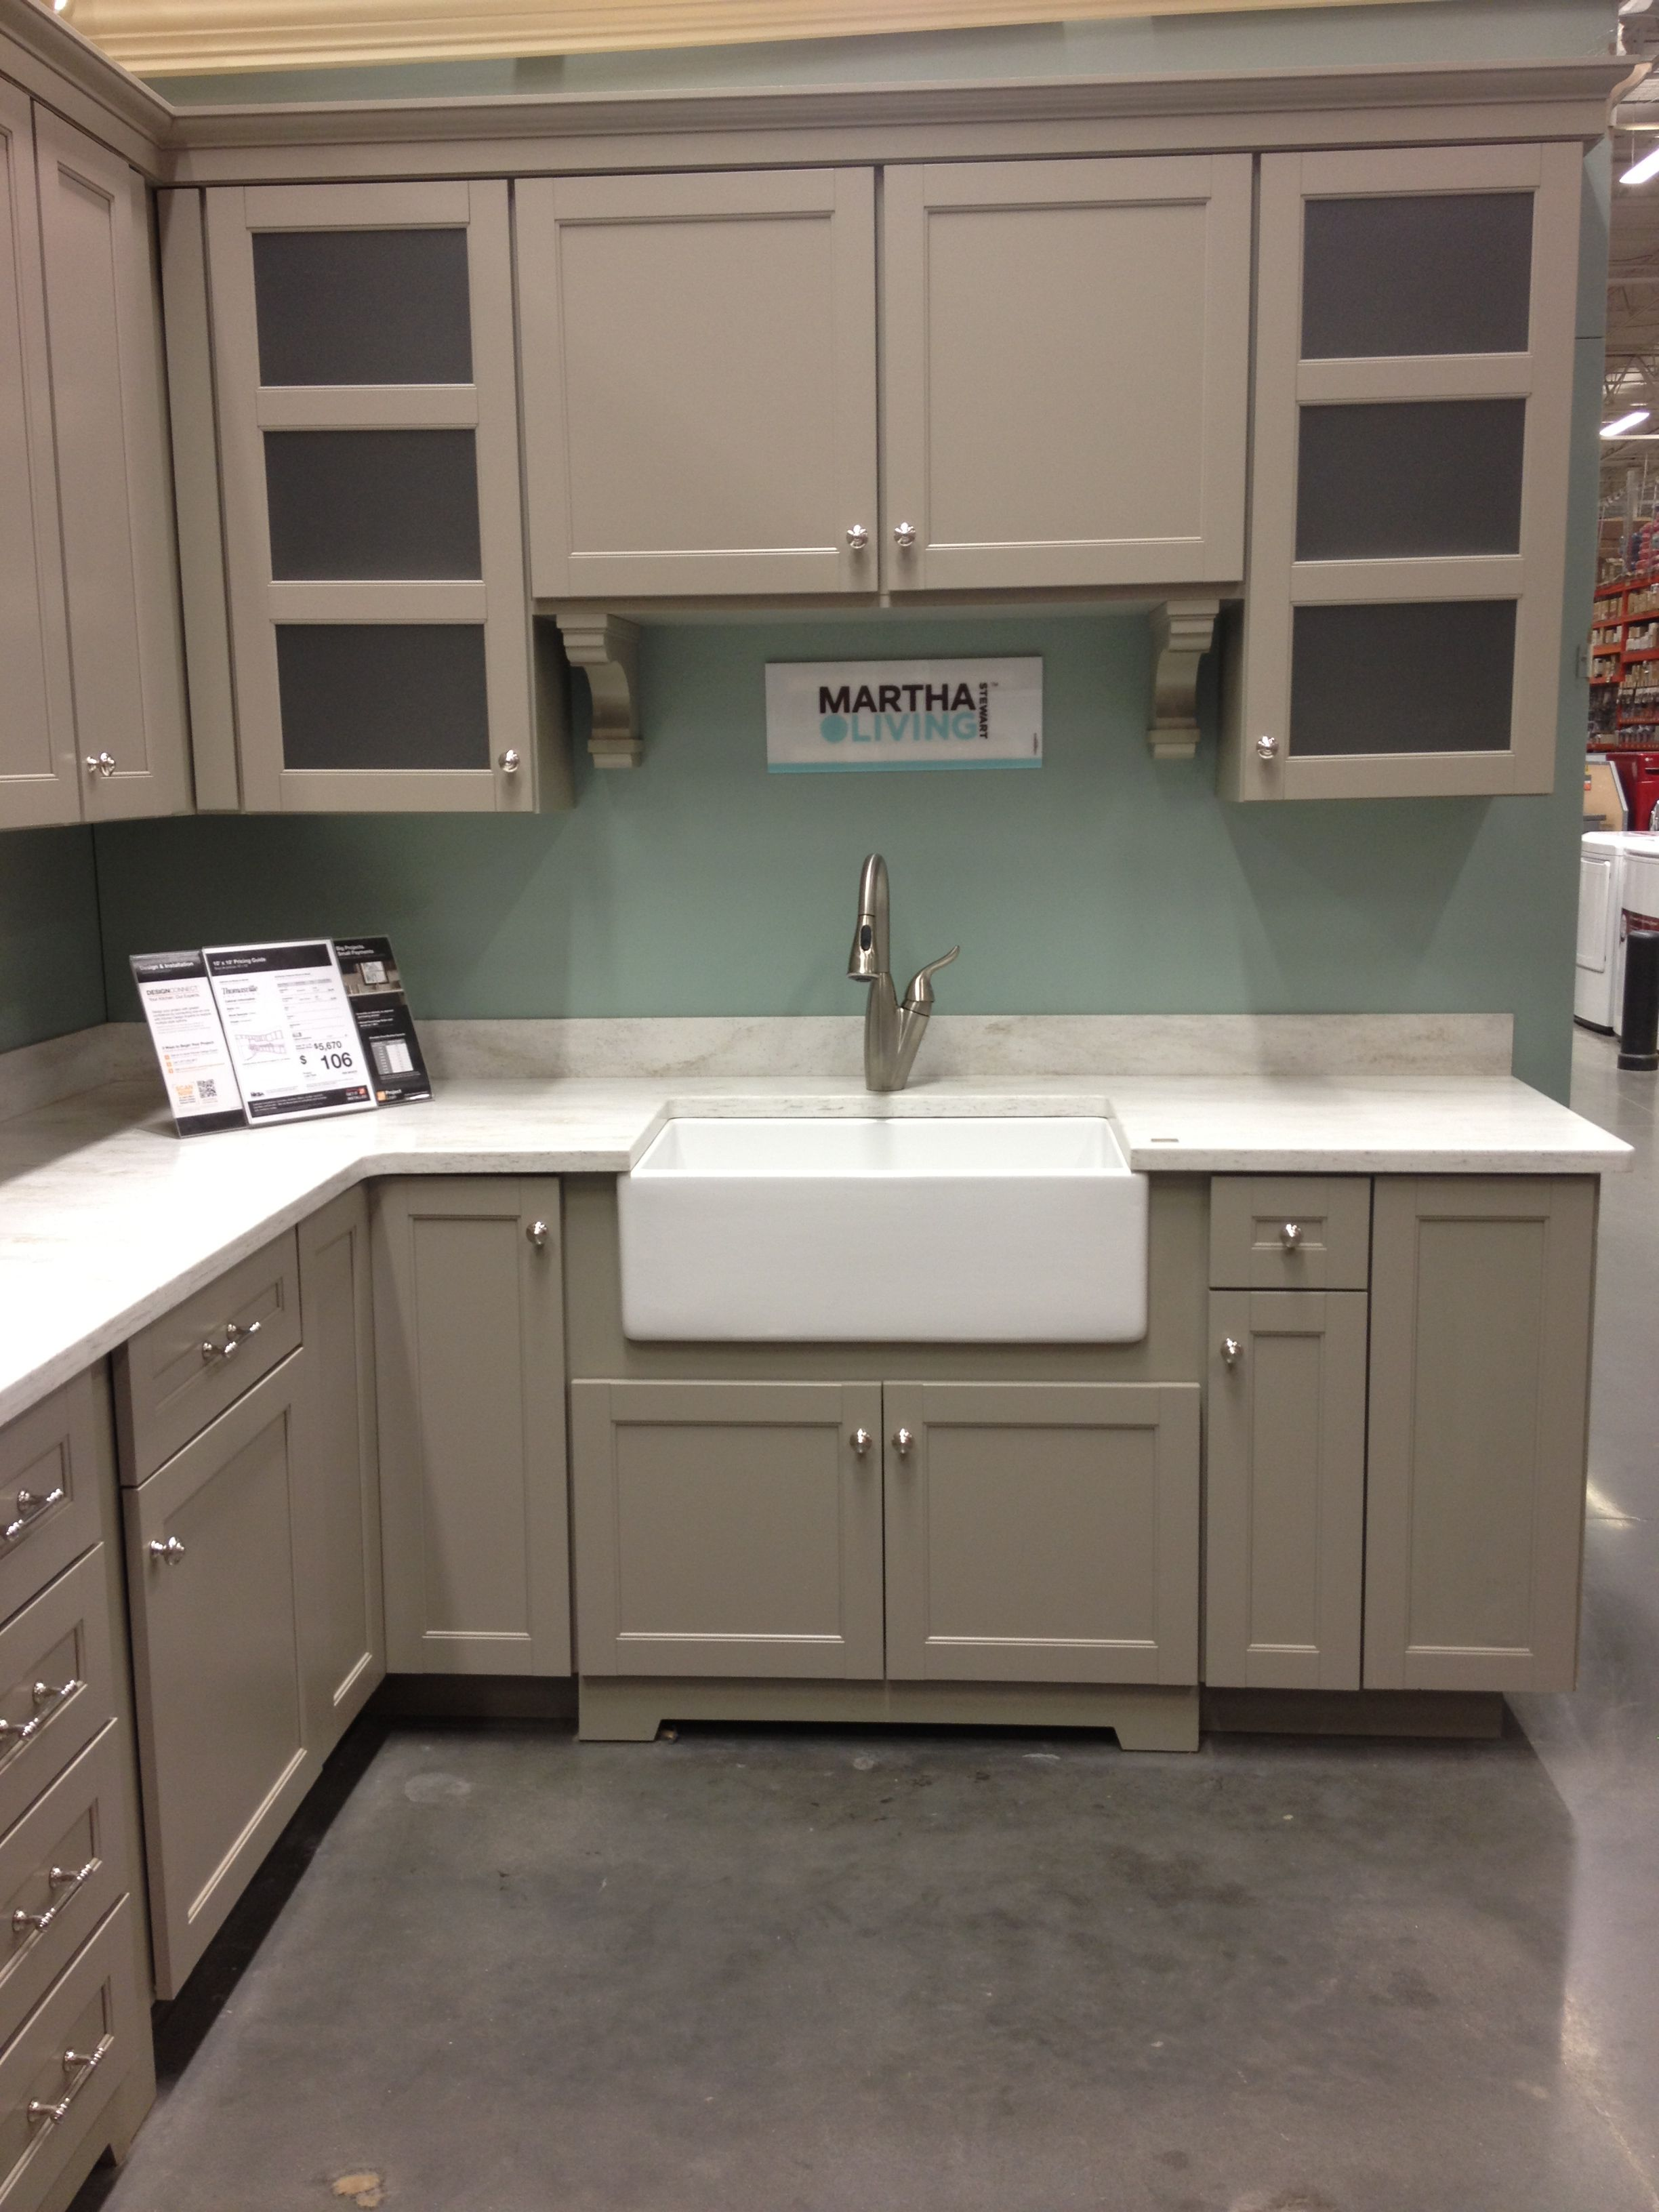 Martha Stewart Kitchen Display Home Depot Home depot